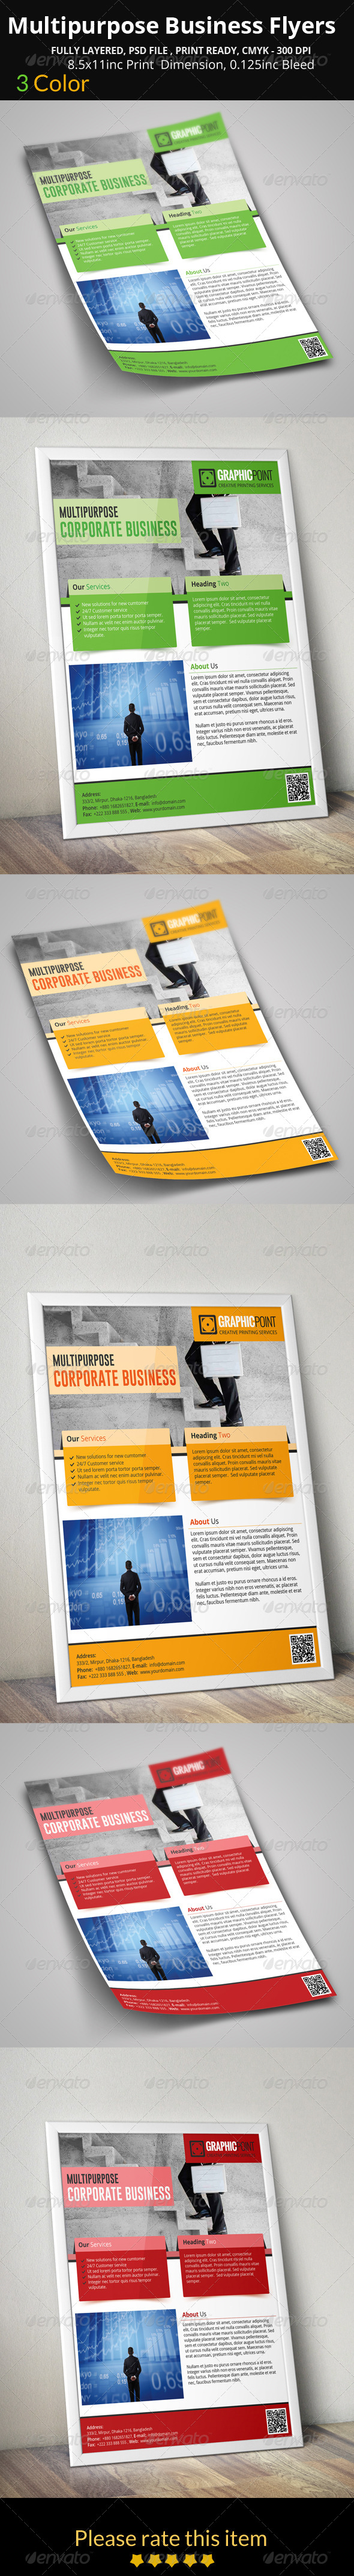 GraphicRiver Multipurpose Business Flyers 8407929